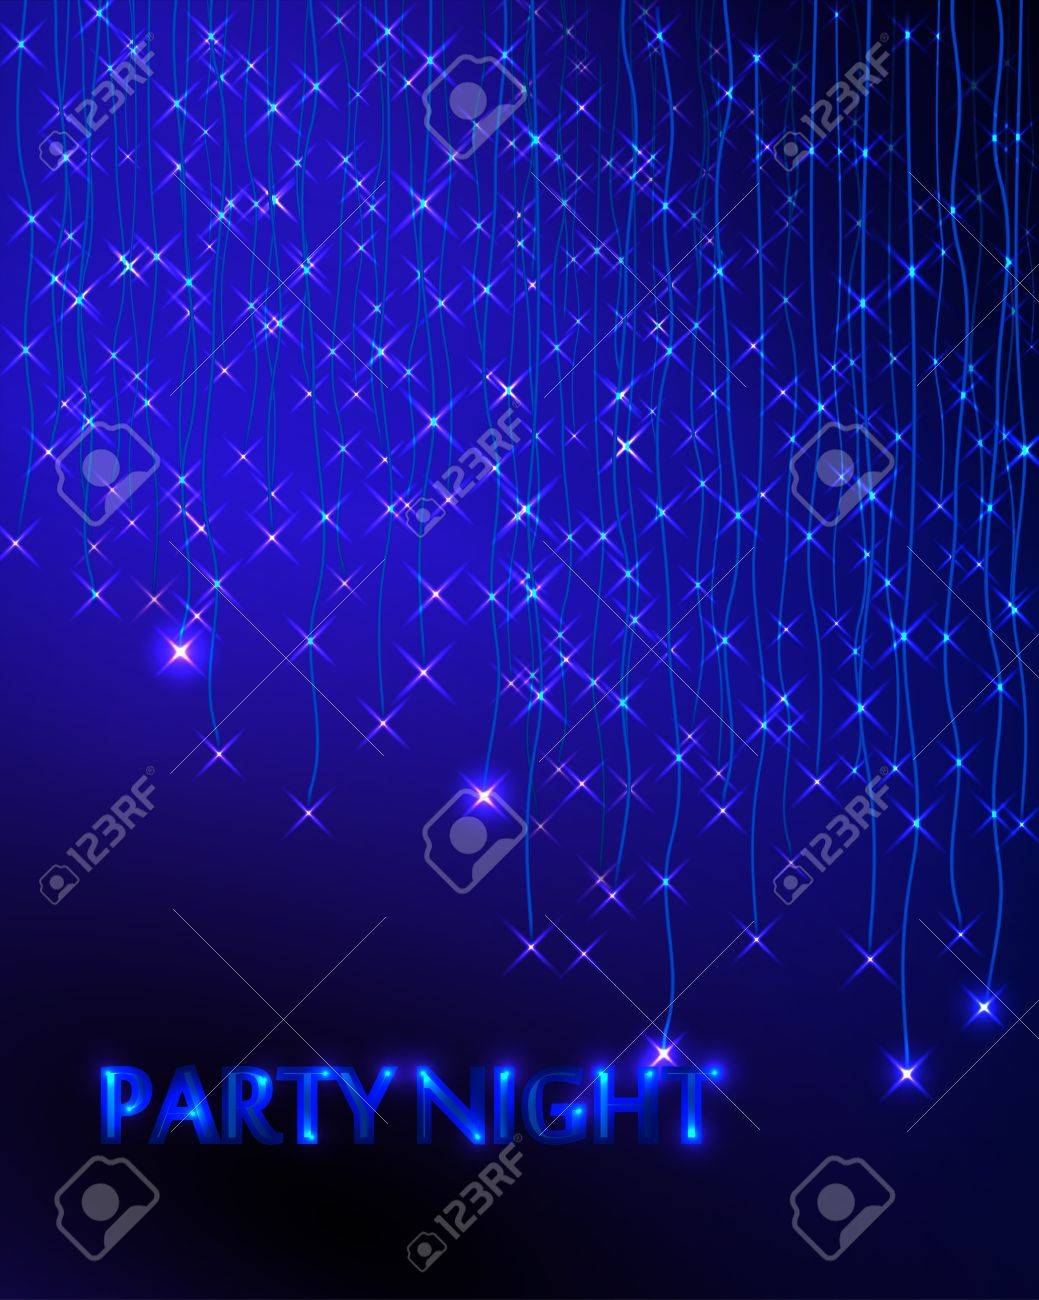 Abstract Background with Garland. Blue Lights. Party Invitation - 37379843